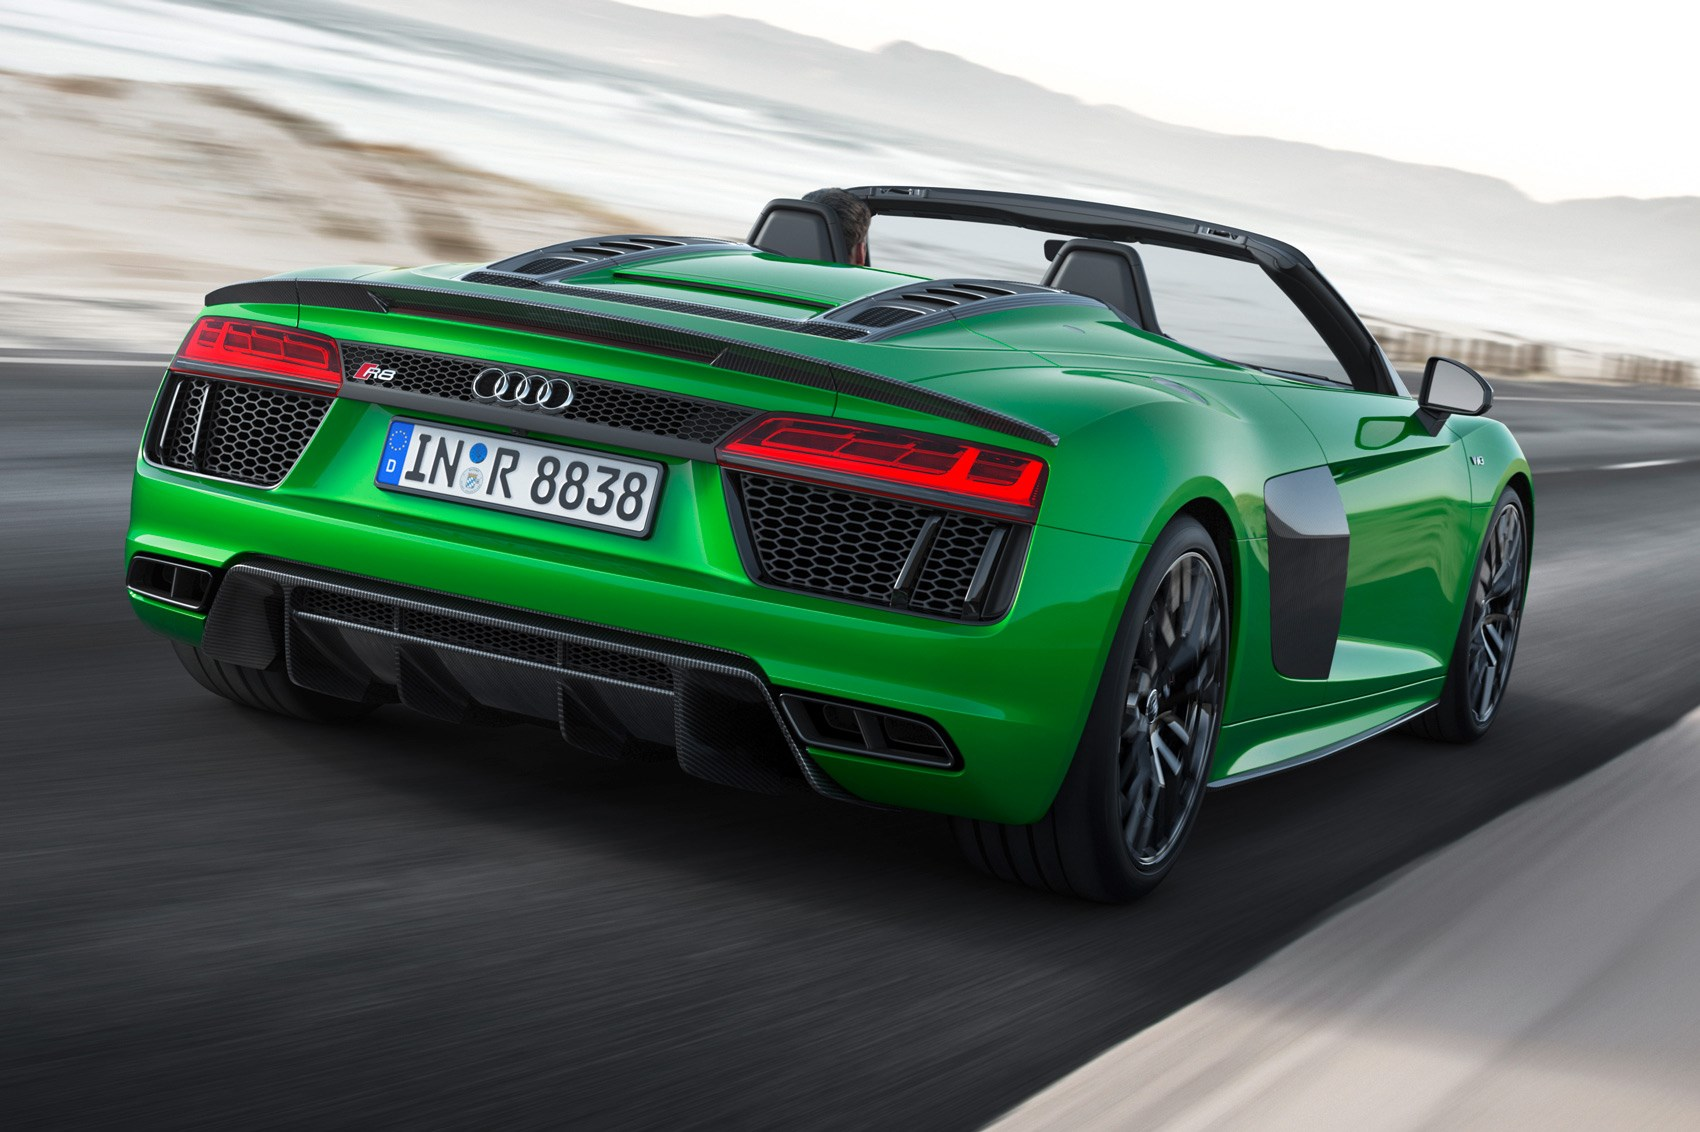 Audi R8 Spyder V10 plus debuts with 610 hp, 560 Nm